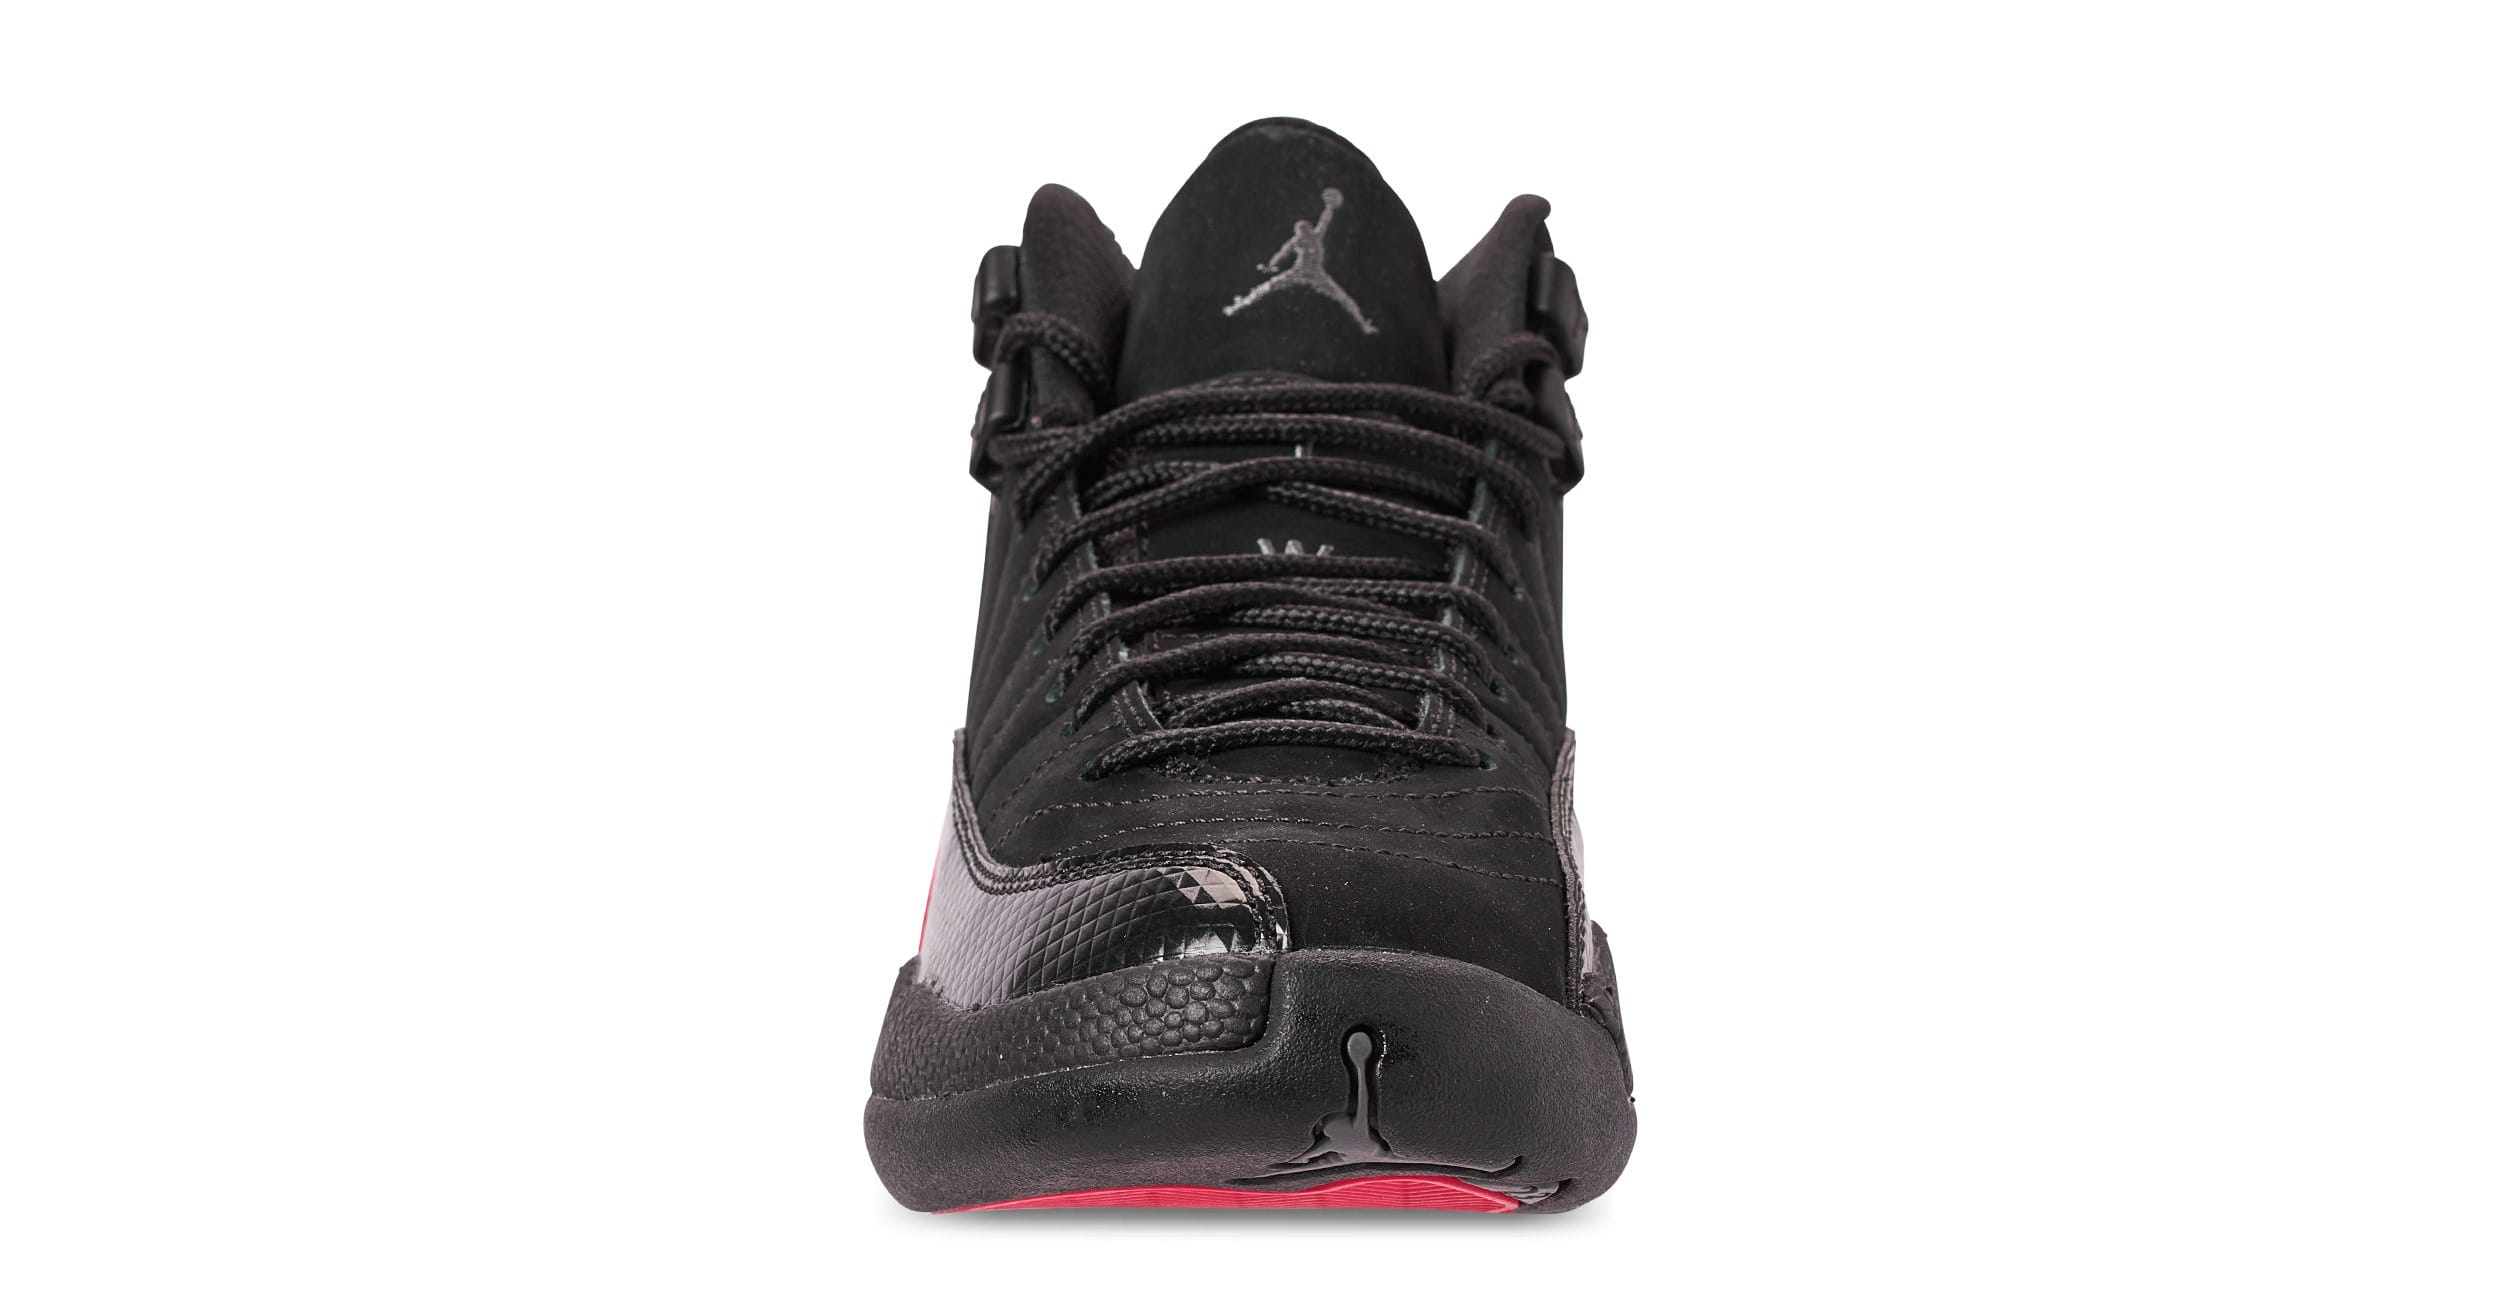 sports shoes c8076 ee8d7 ... clearance image via finish line air jordan 12 retro gg black dark grey  rush pink 510815